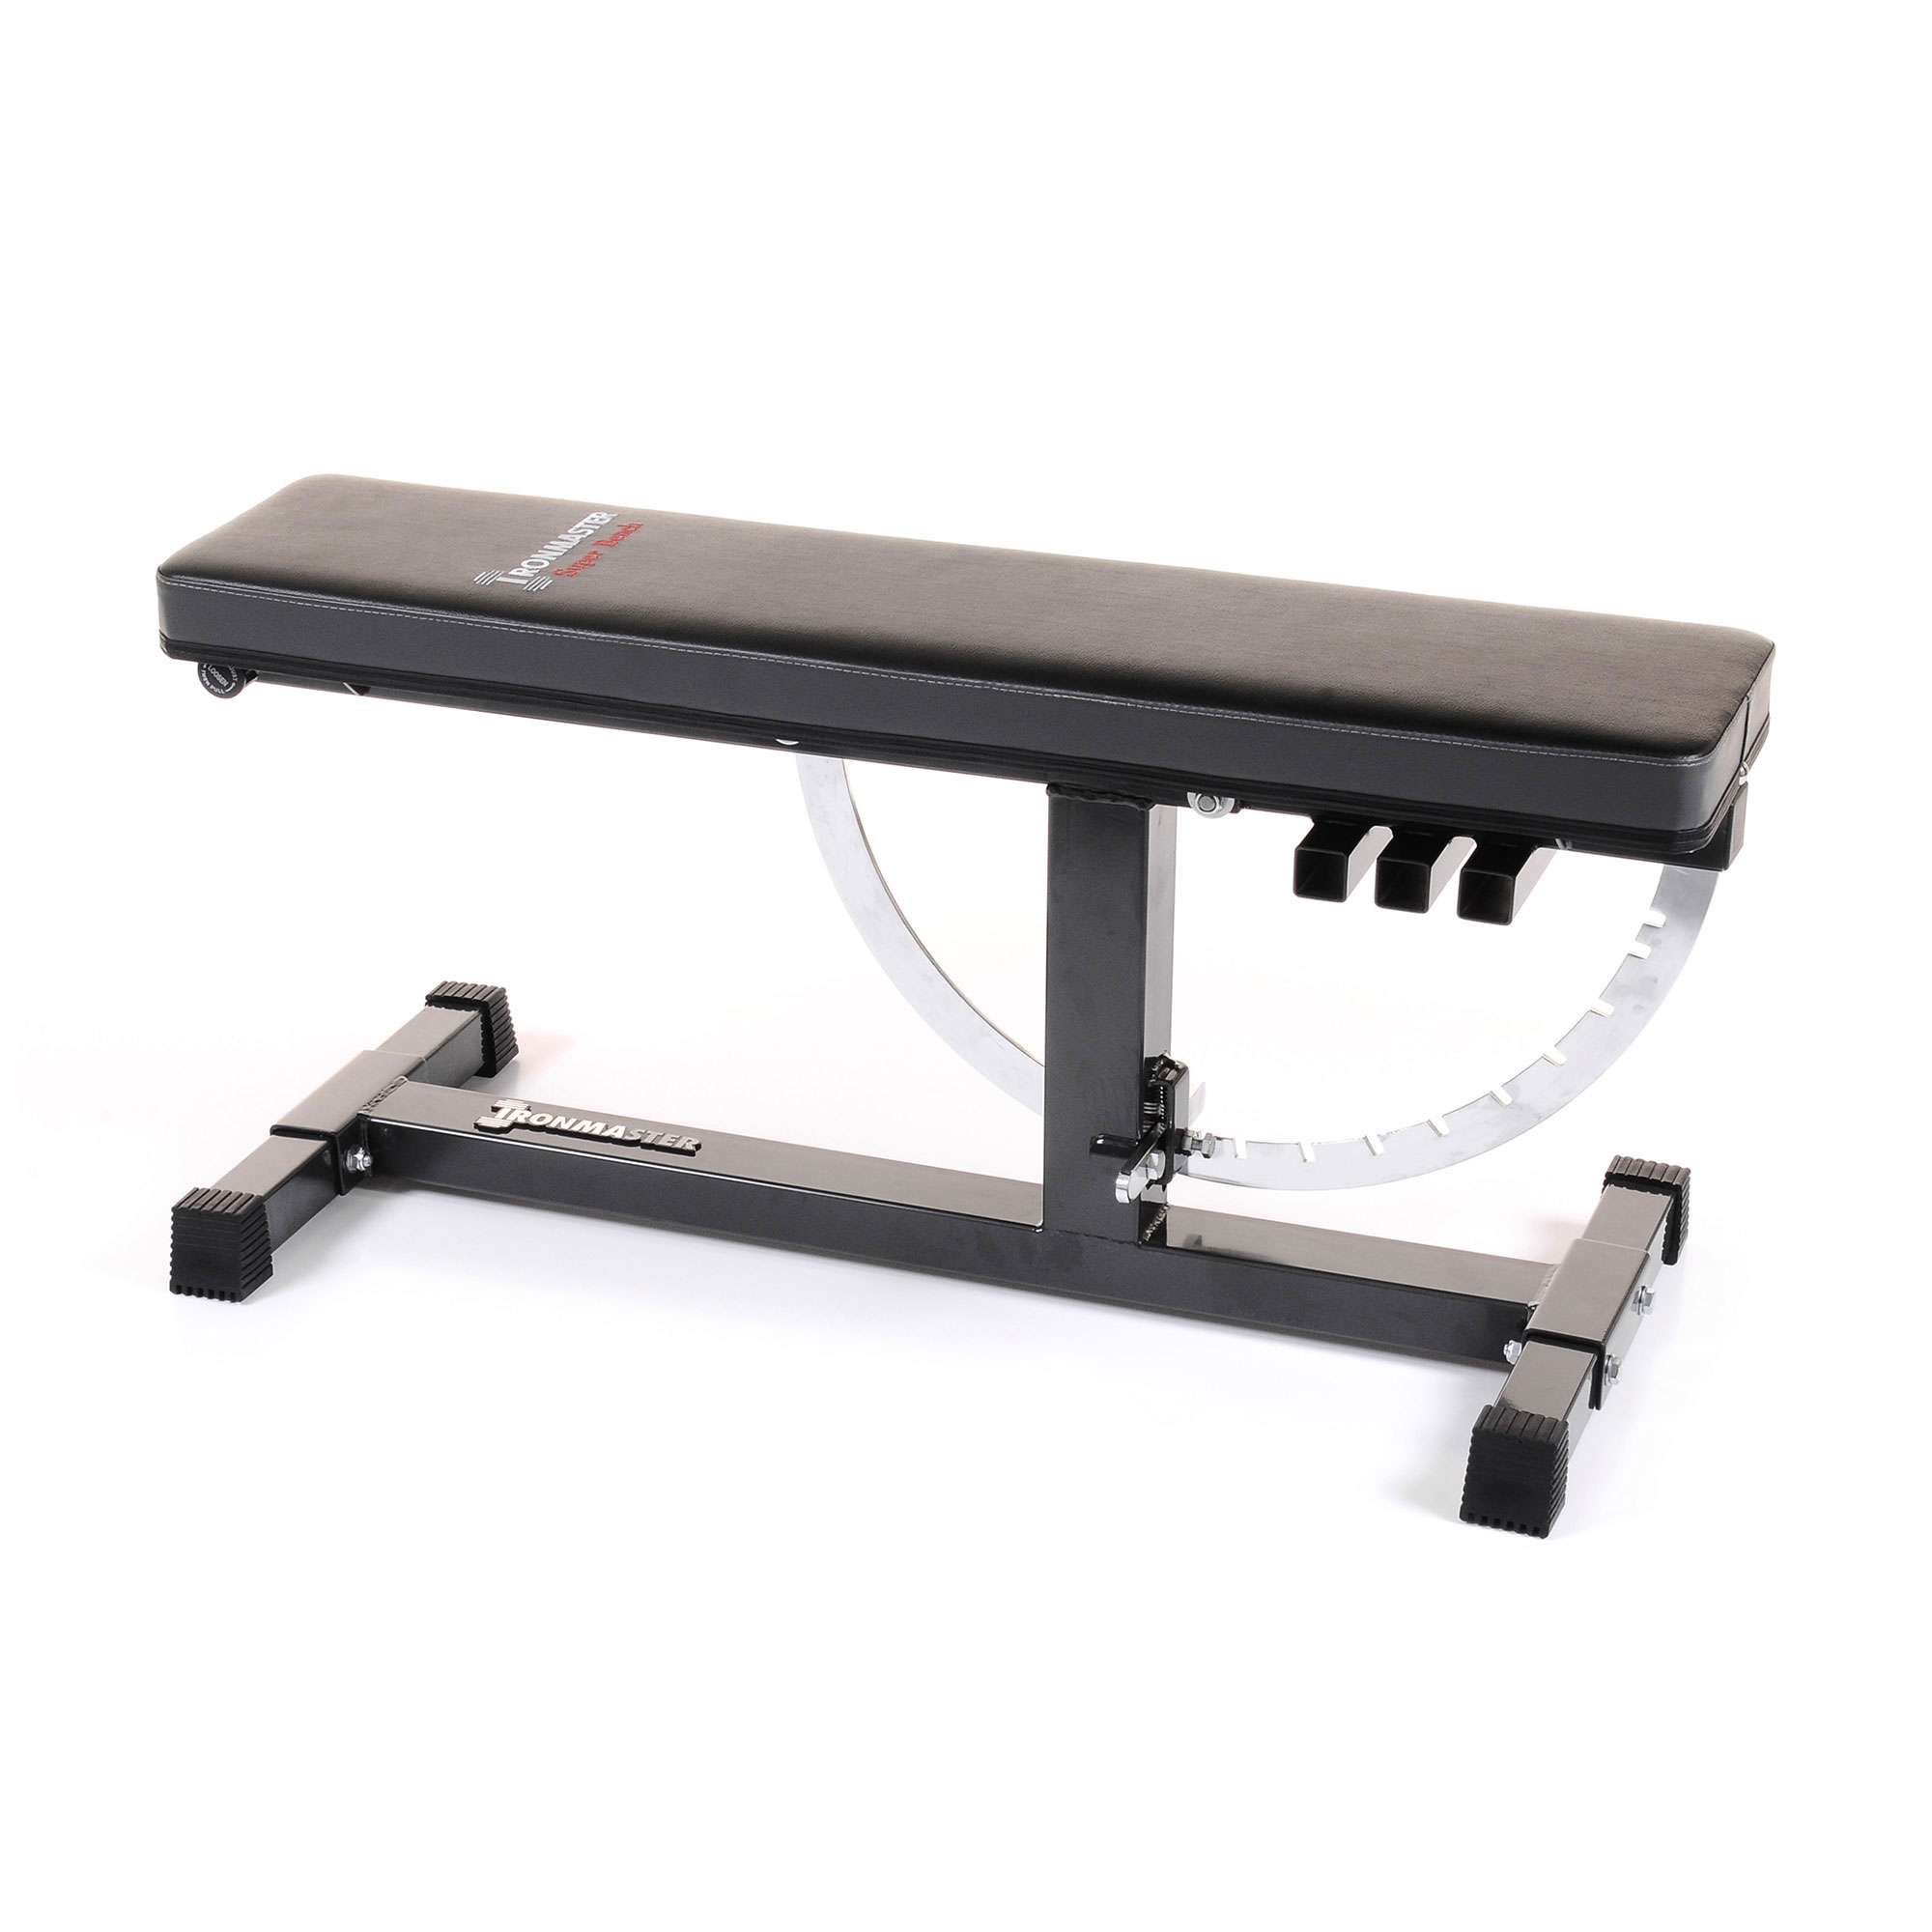 Compact Weight Bench 28 Images Most Compact Workout Bench Eoua Blog Foldable Compact Weight